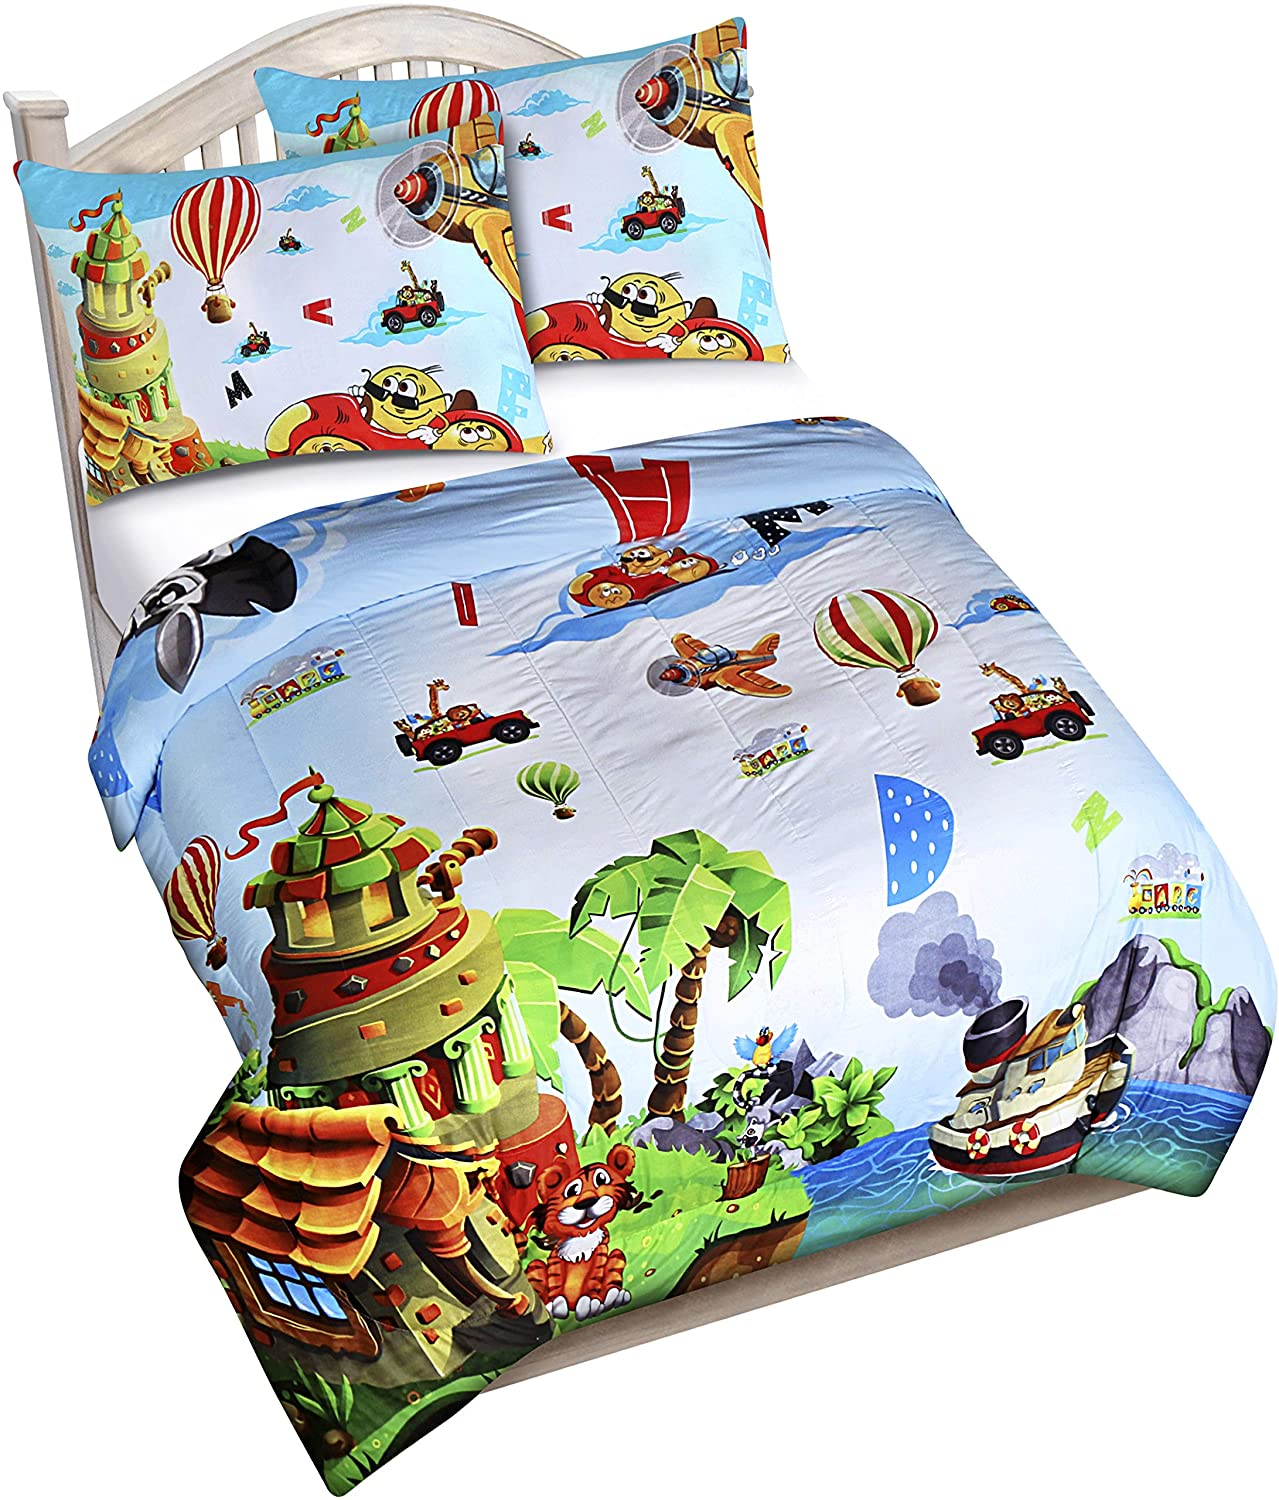 Utopia Bedding All Season Super Soft Jungle Theme Animals Kids Comforter Set - 3 Piece Toddler Bedding Sets for Boys - Twin/Twin XL